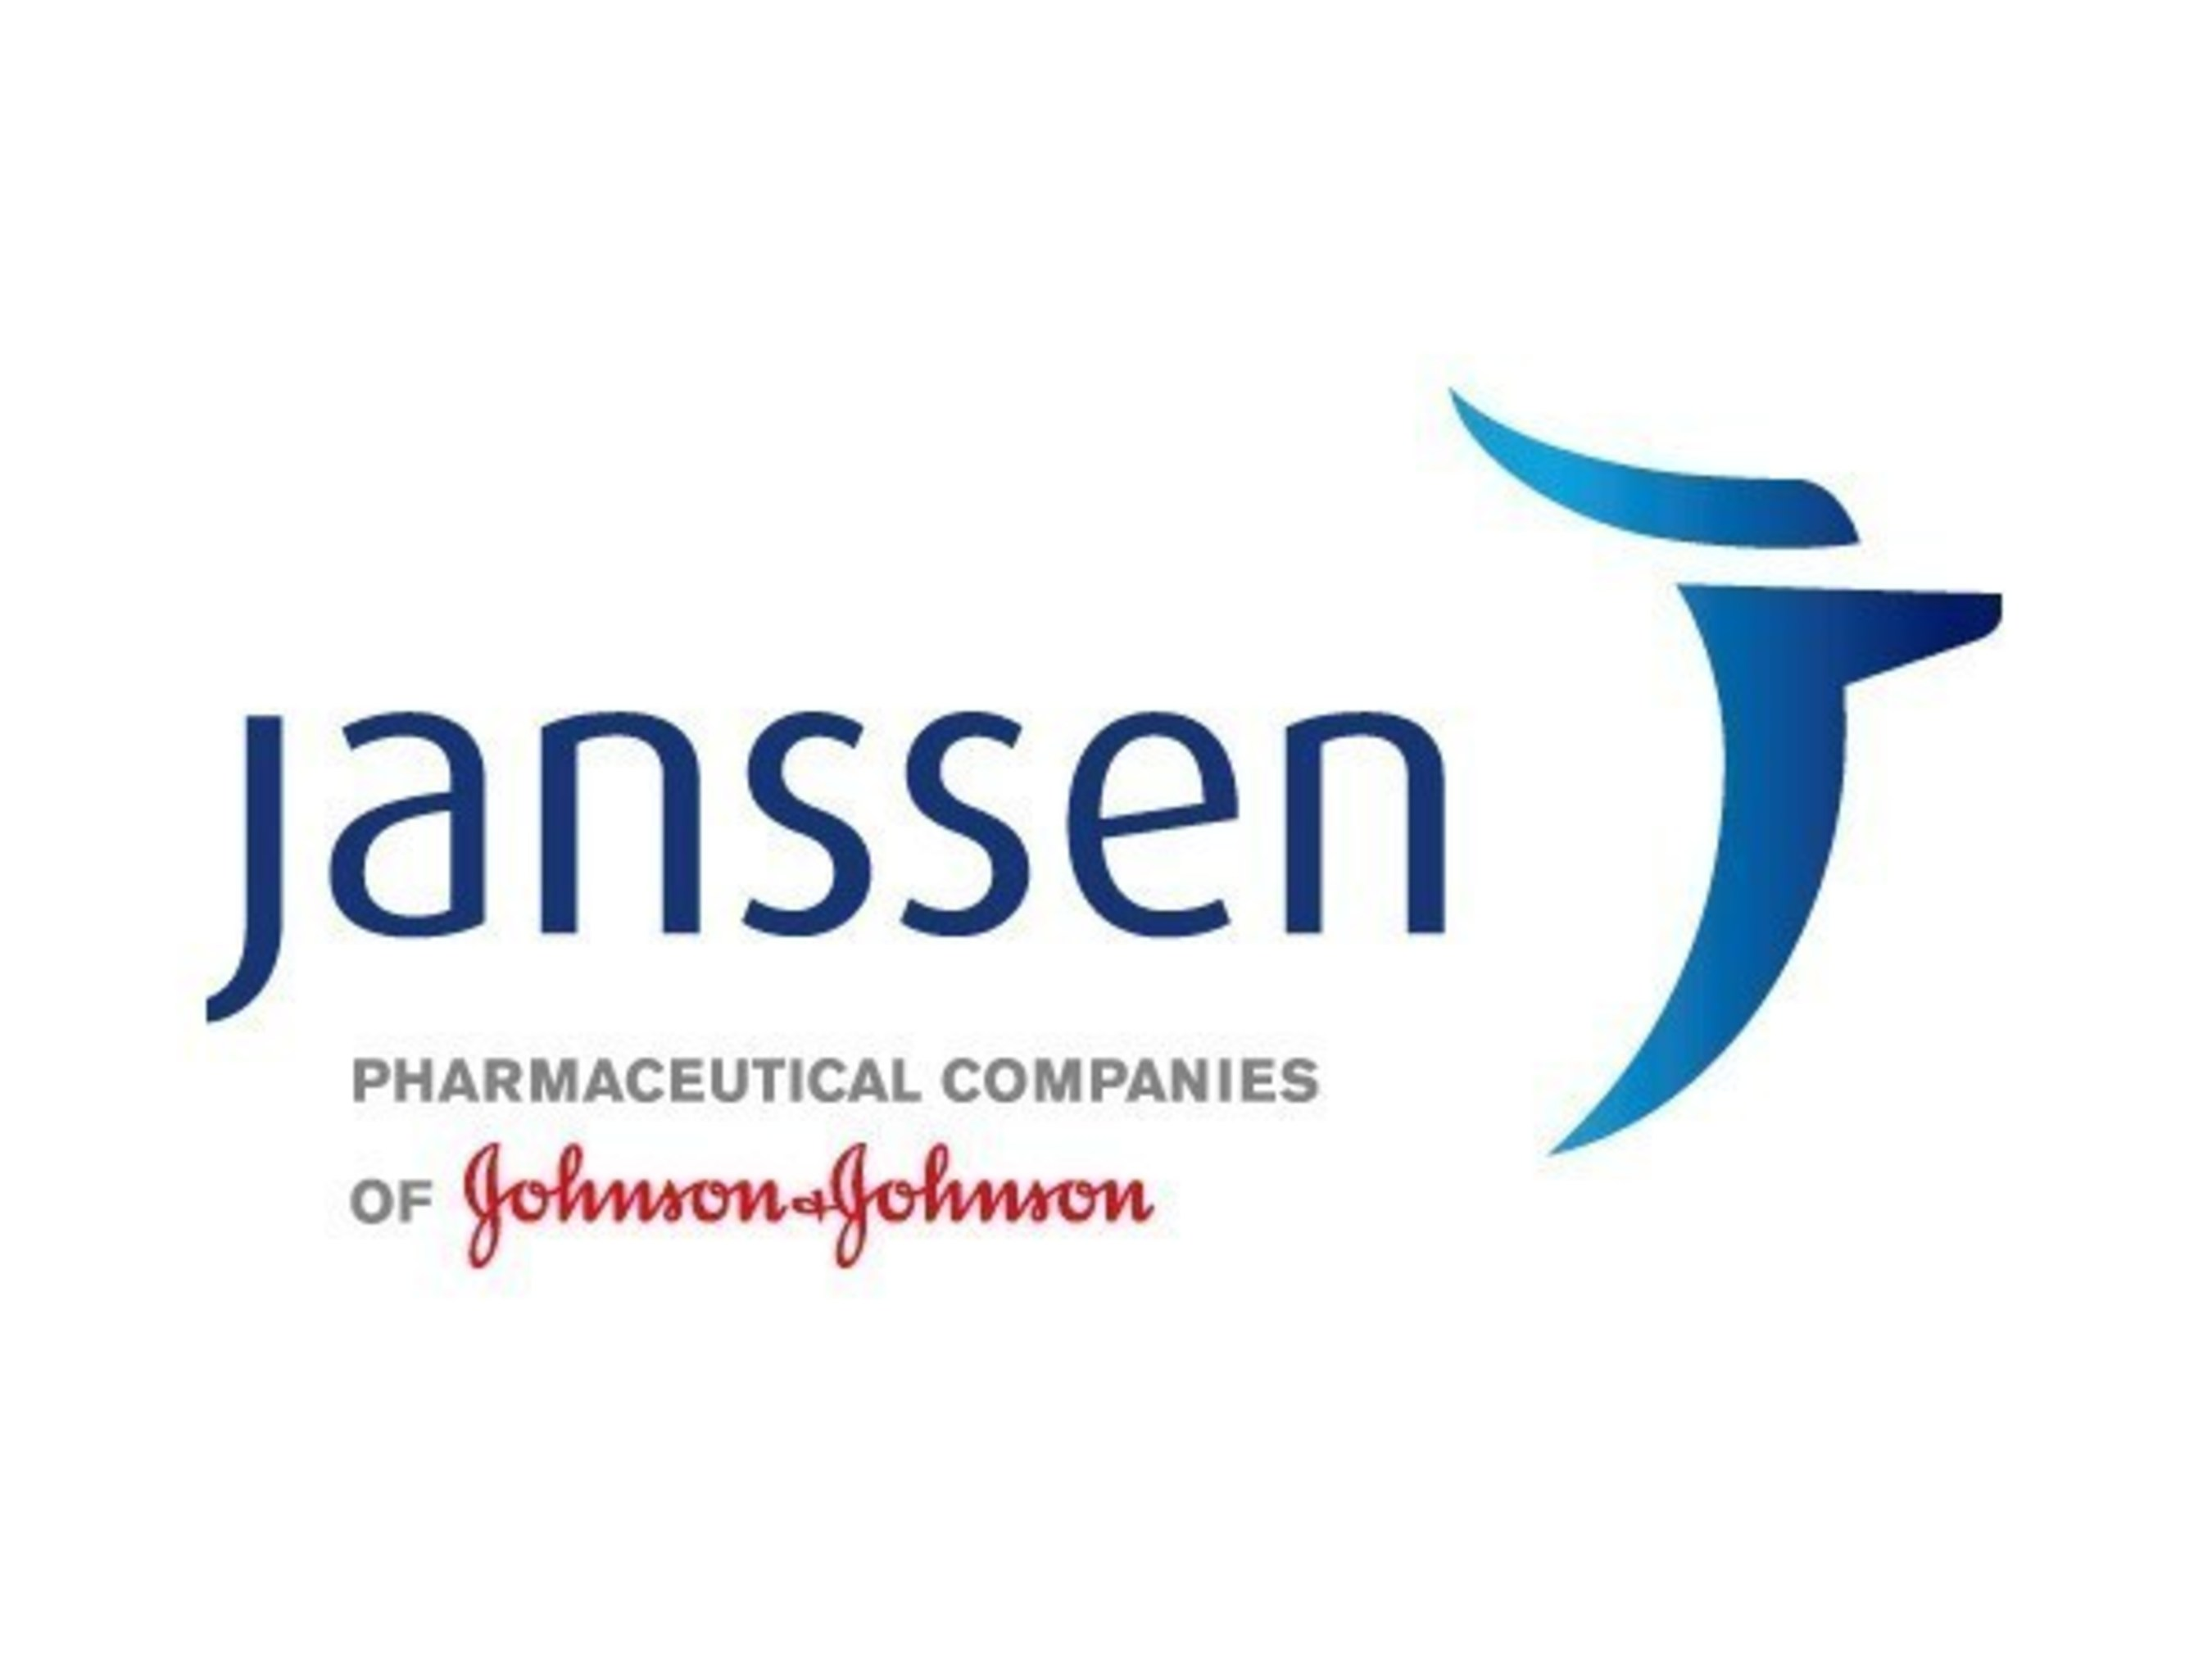 JANSSEN SUBMITS APPLICATION TO EMA SEEKING APPROVAL OF ANTI-INTERLEUKIN-23 MONOCLONAL ANTIBODY GUSELKUMAB FOR THE TREATMENT OF MODERATE TO SEVERE PLAQUE PSORIASIS